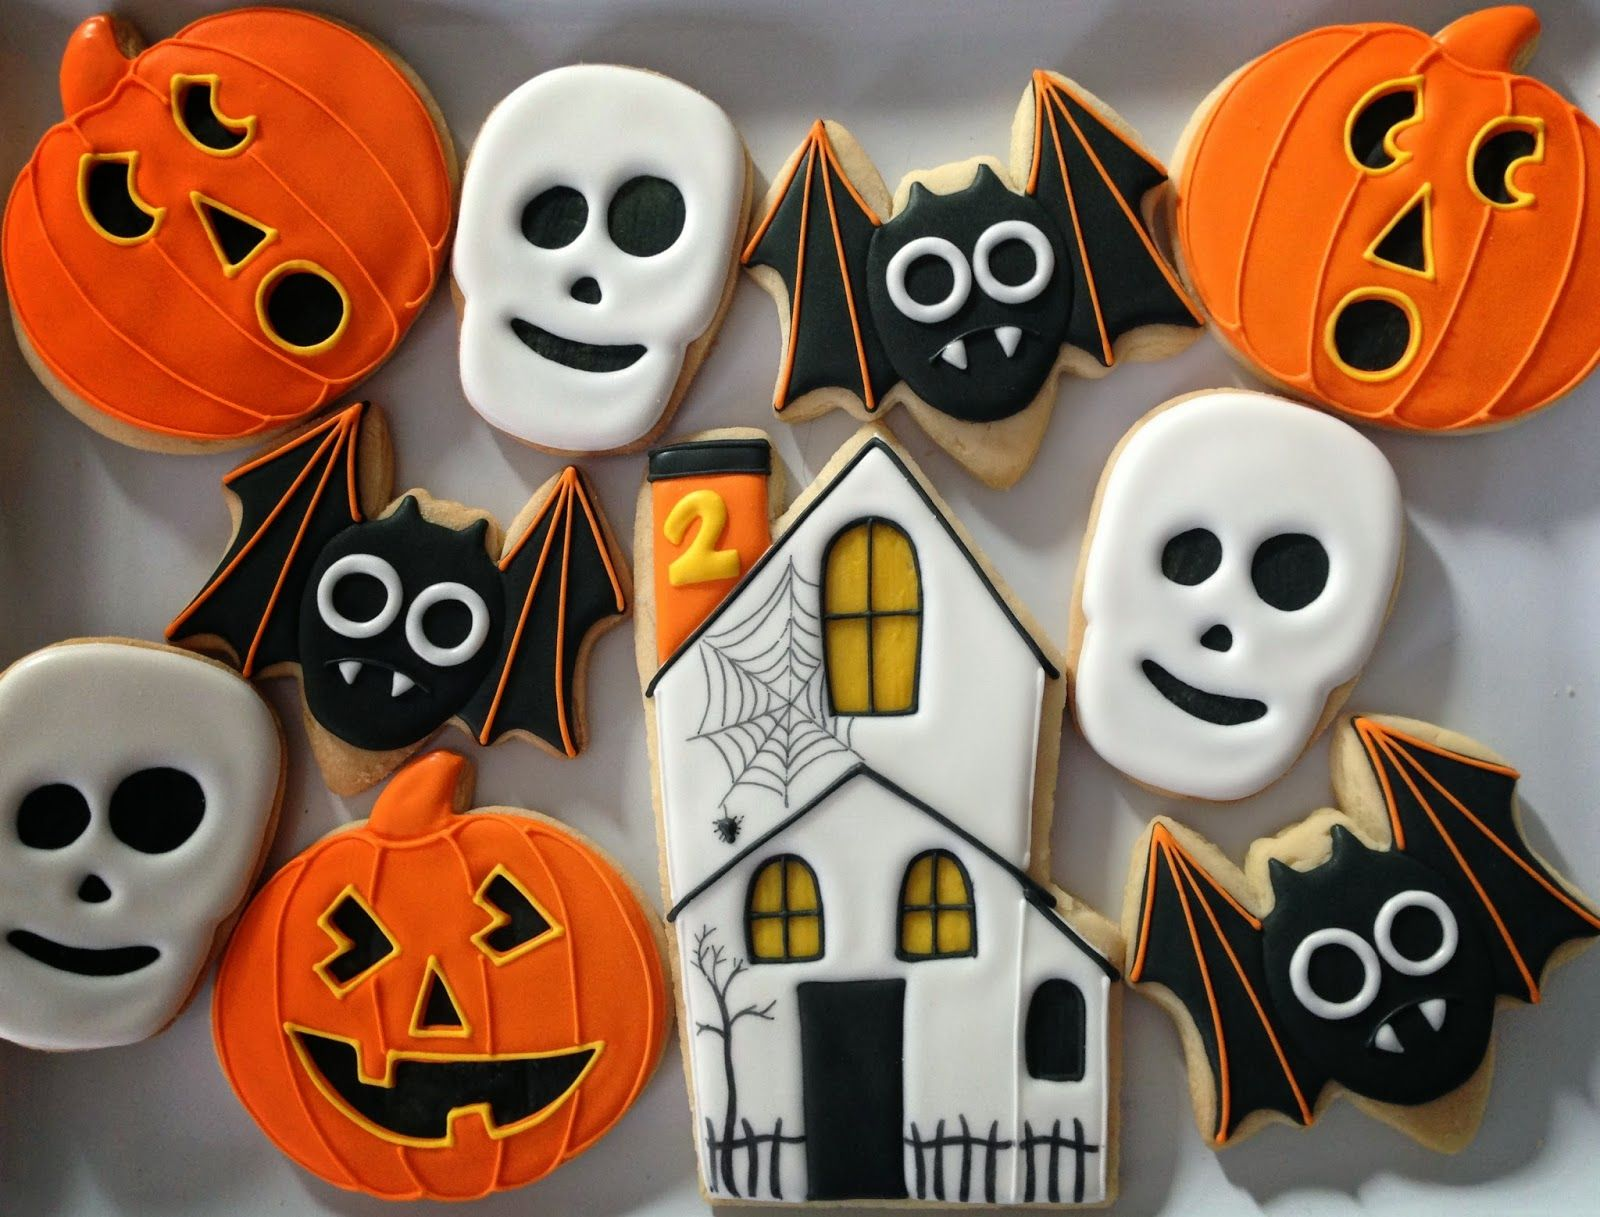 Oh Sugar Events Halloweenies decorated cookies Pinterest - Halloween Decorated Cookies